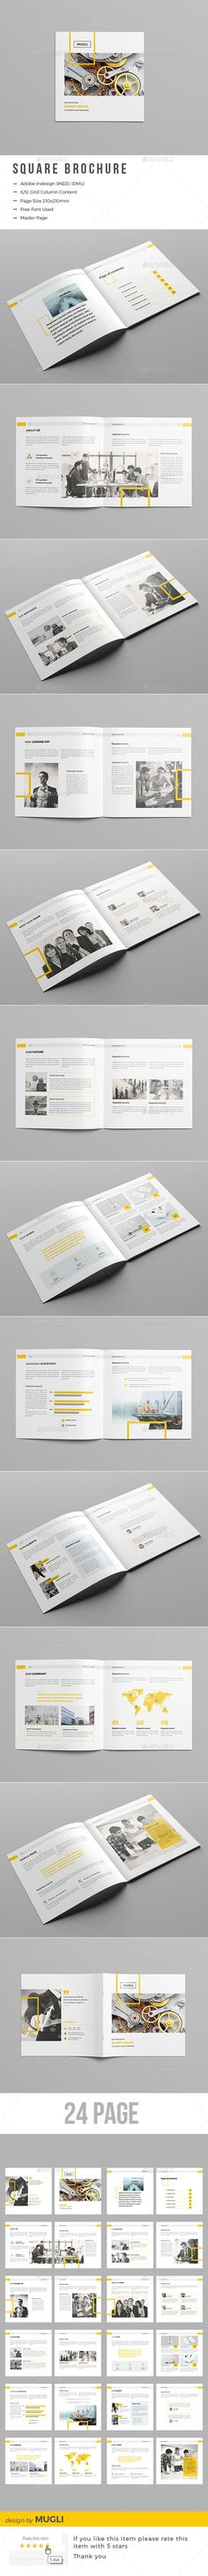 Brochure Corporate Brochure Brochures And Brochure Template